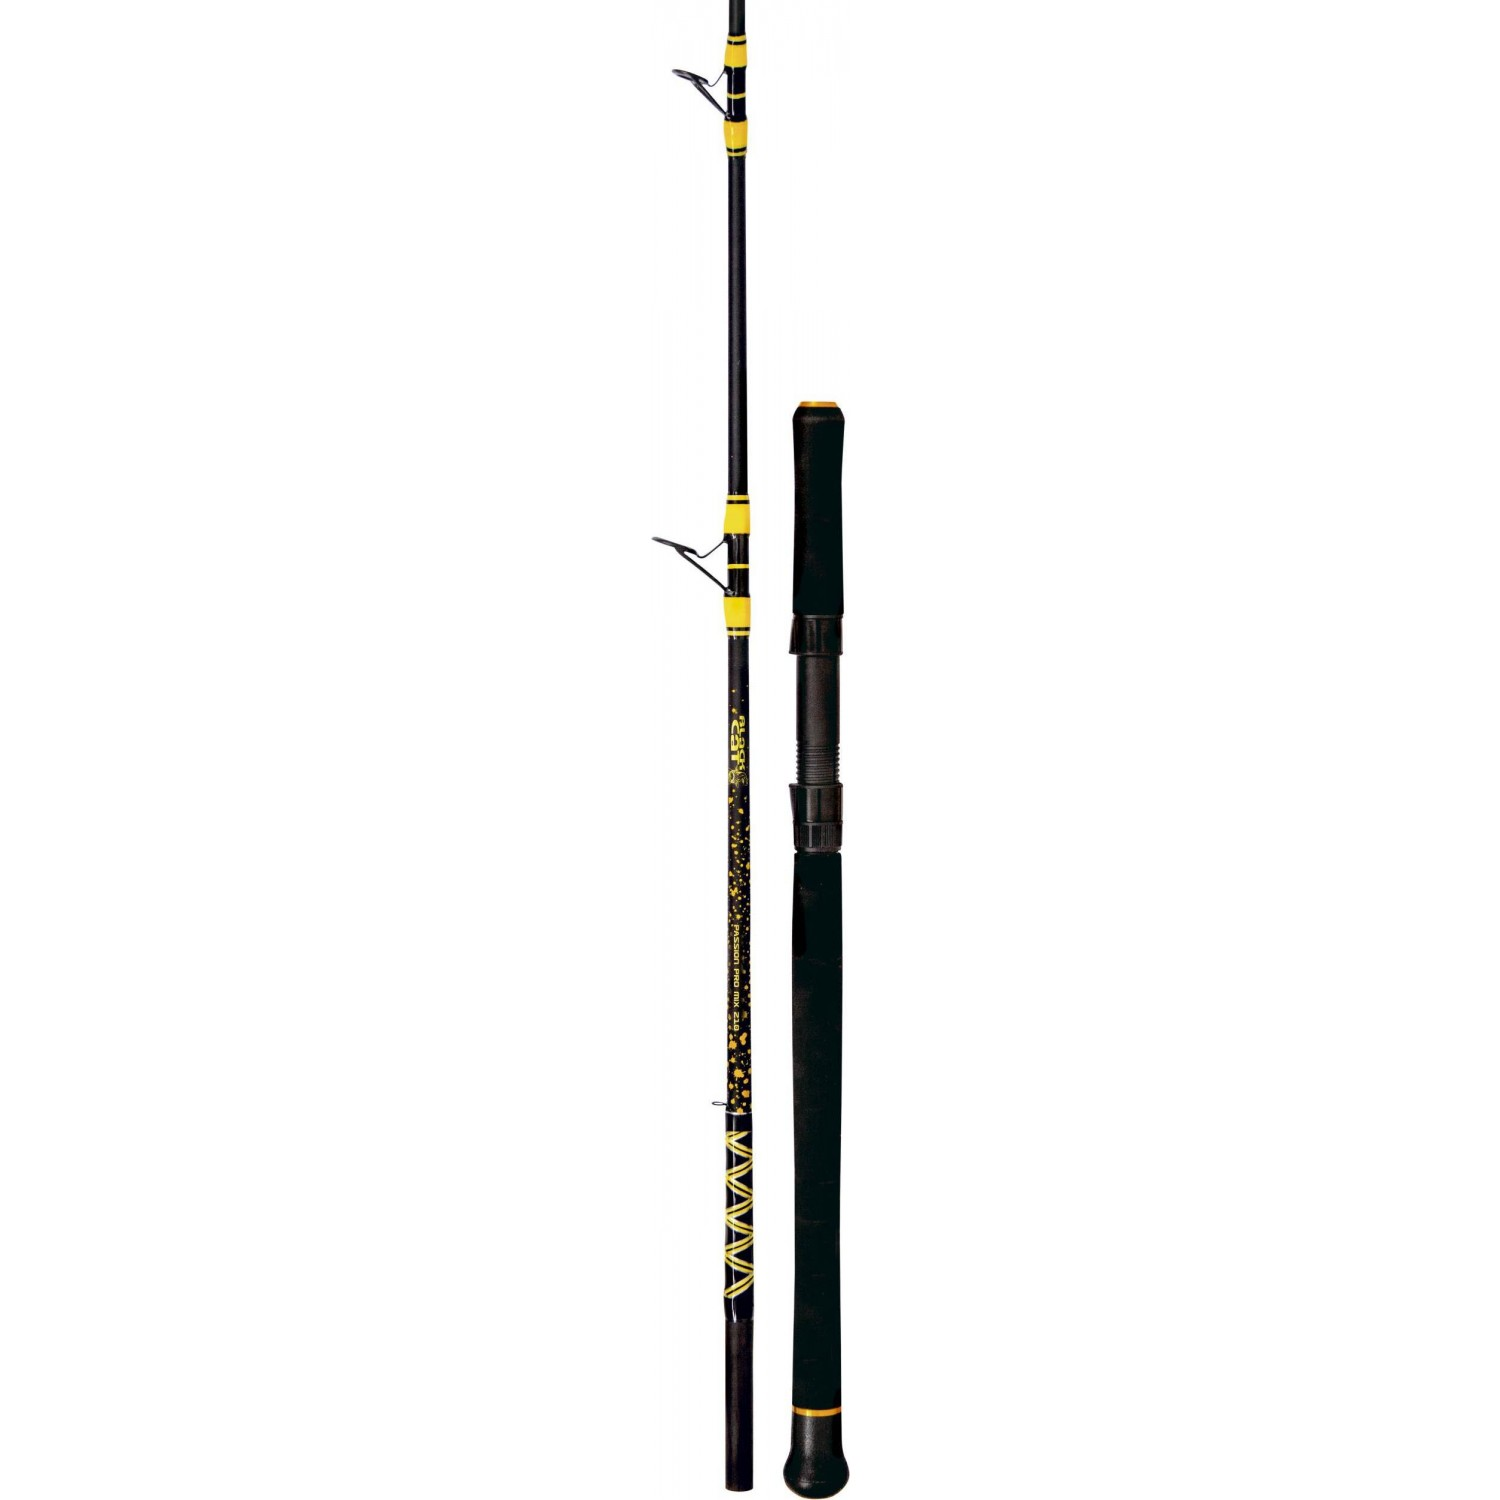 Rhino Black Cat Passion Pro DX Mix, 2.10m, 100-200g